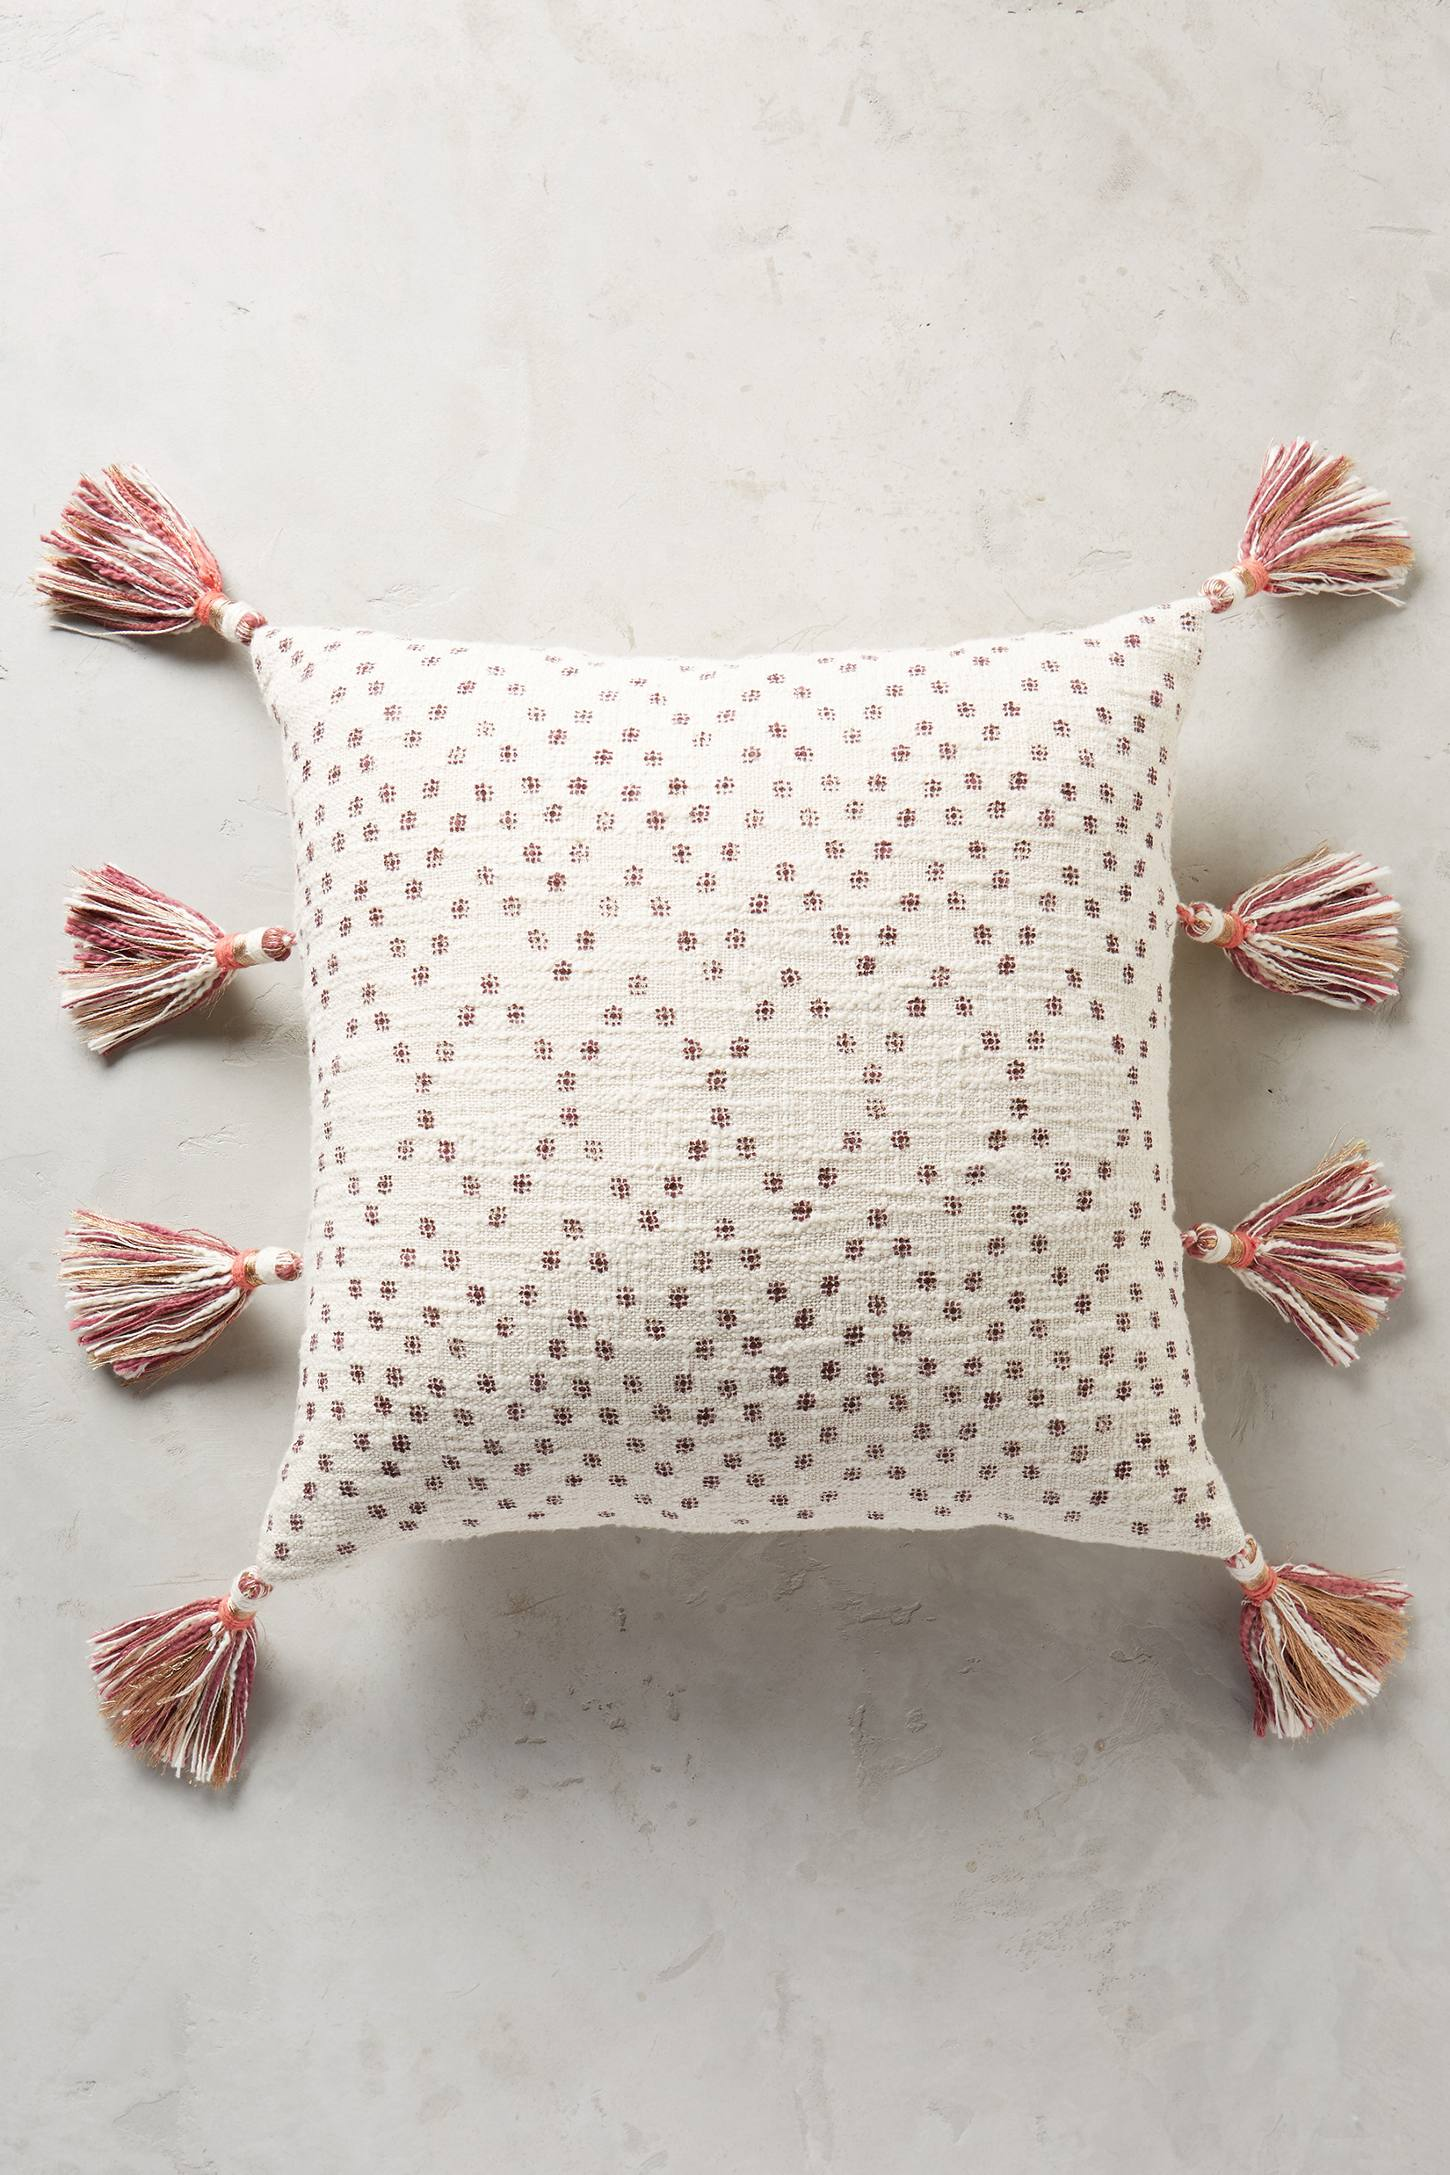 Slide View: 9: Tasseled Pointilliste Pillow